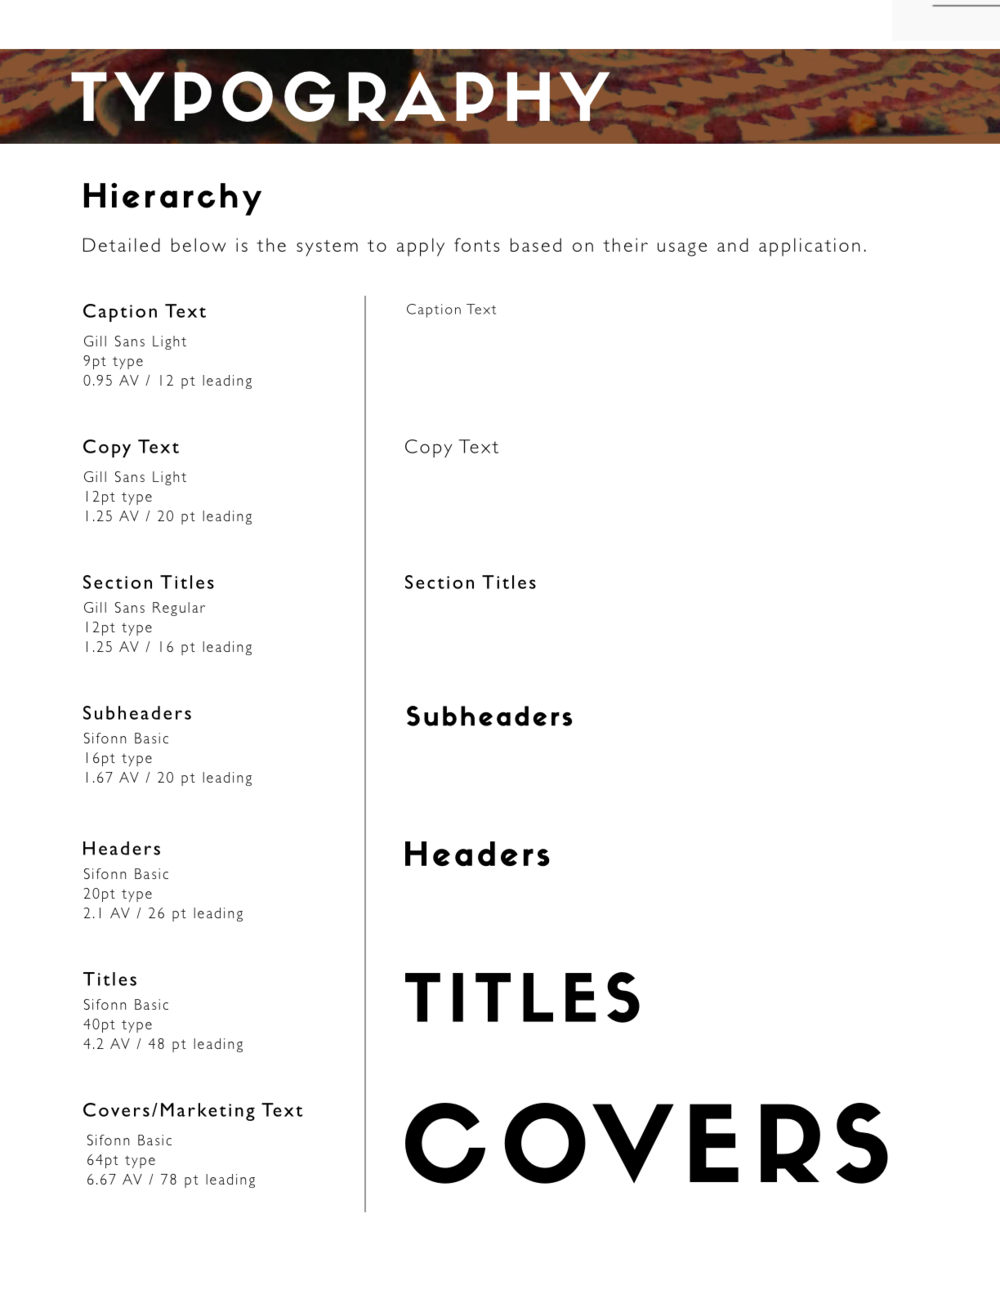 Fonts Hierarchy_2x.png